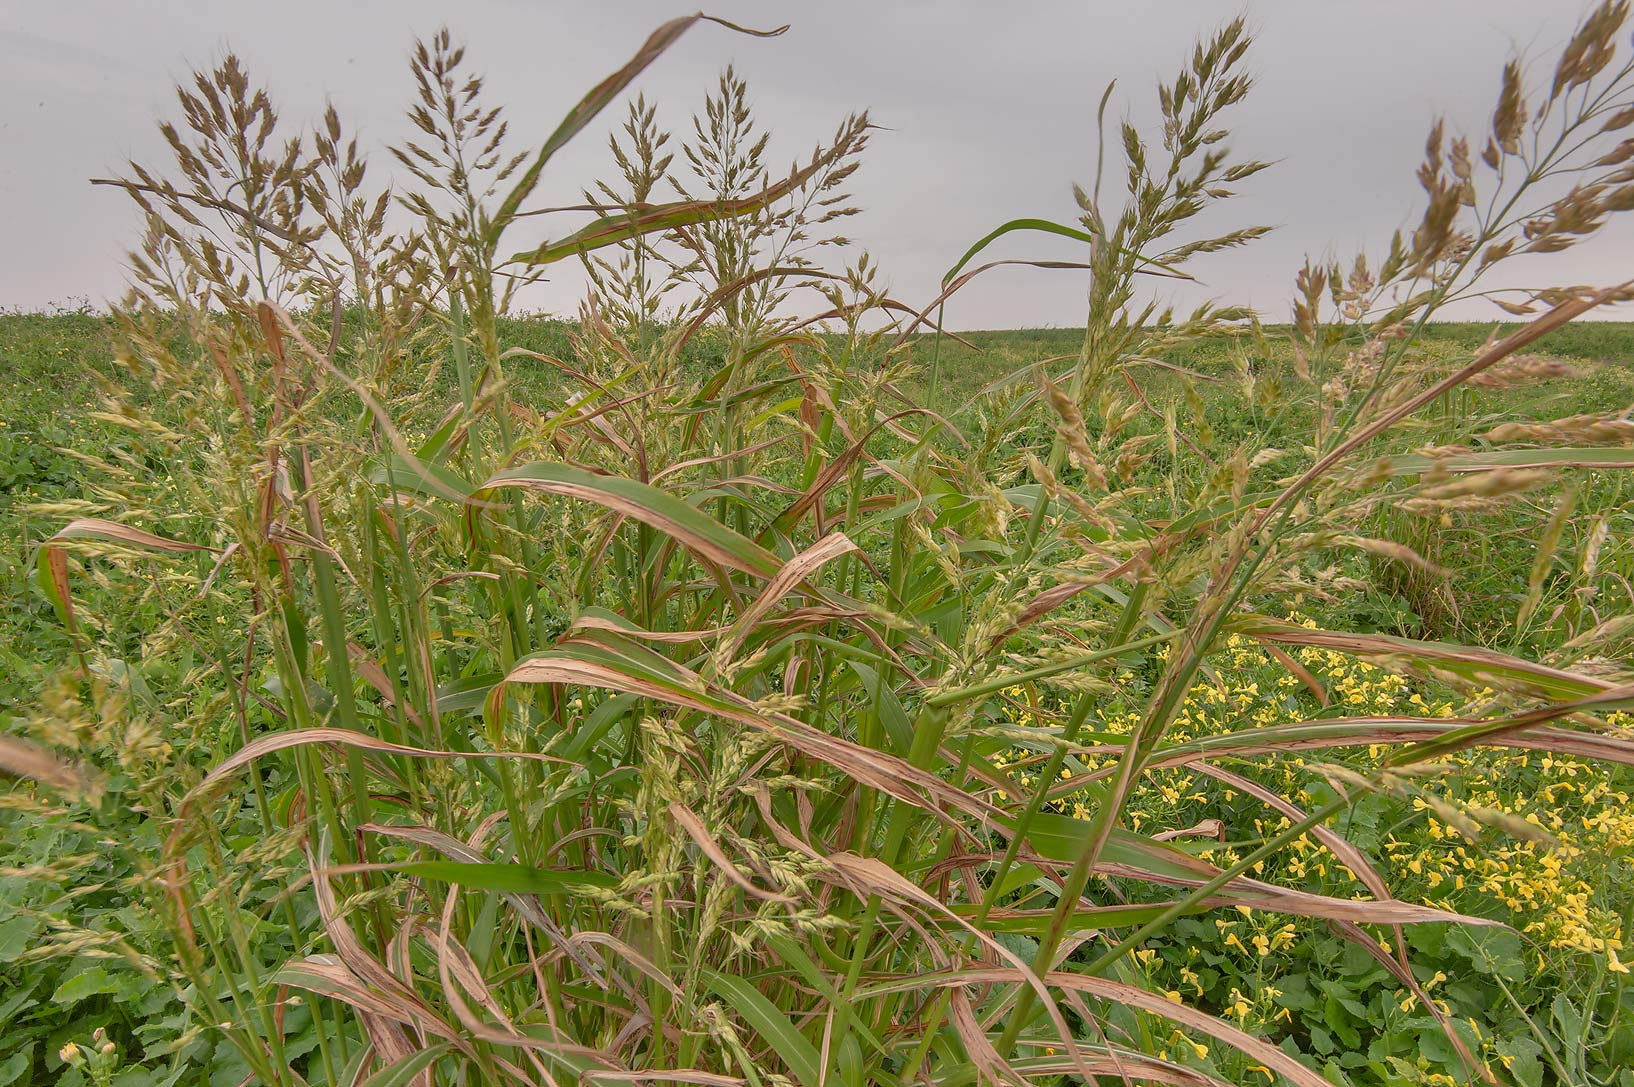 Johnson grass (Sorghum halepense) on Green...in Irkhaya (Irkaya) Farms. Qatar